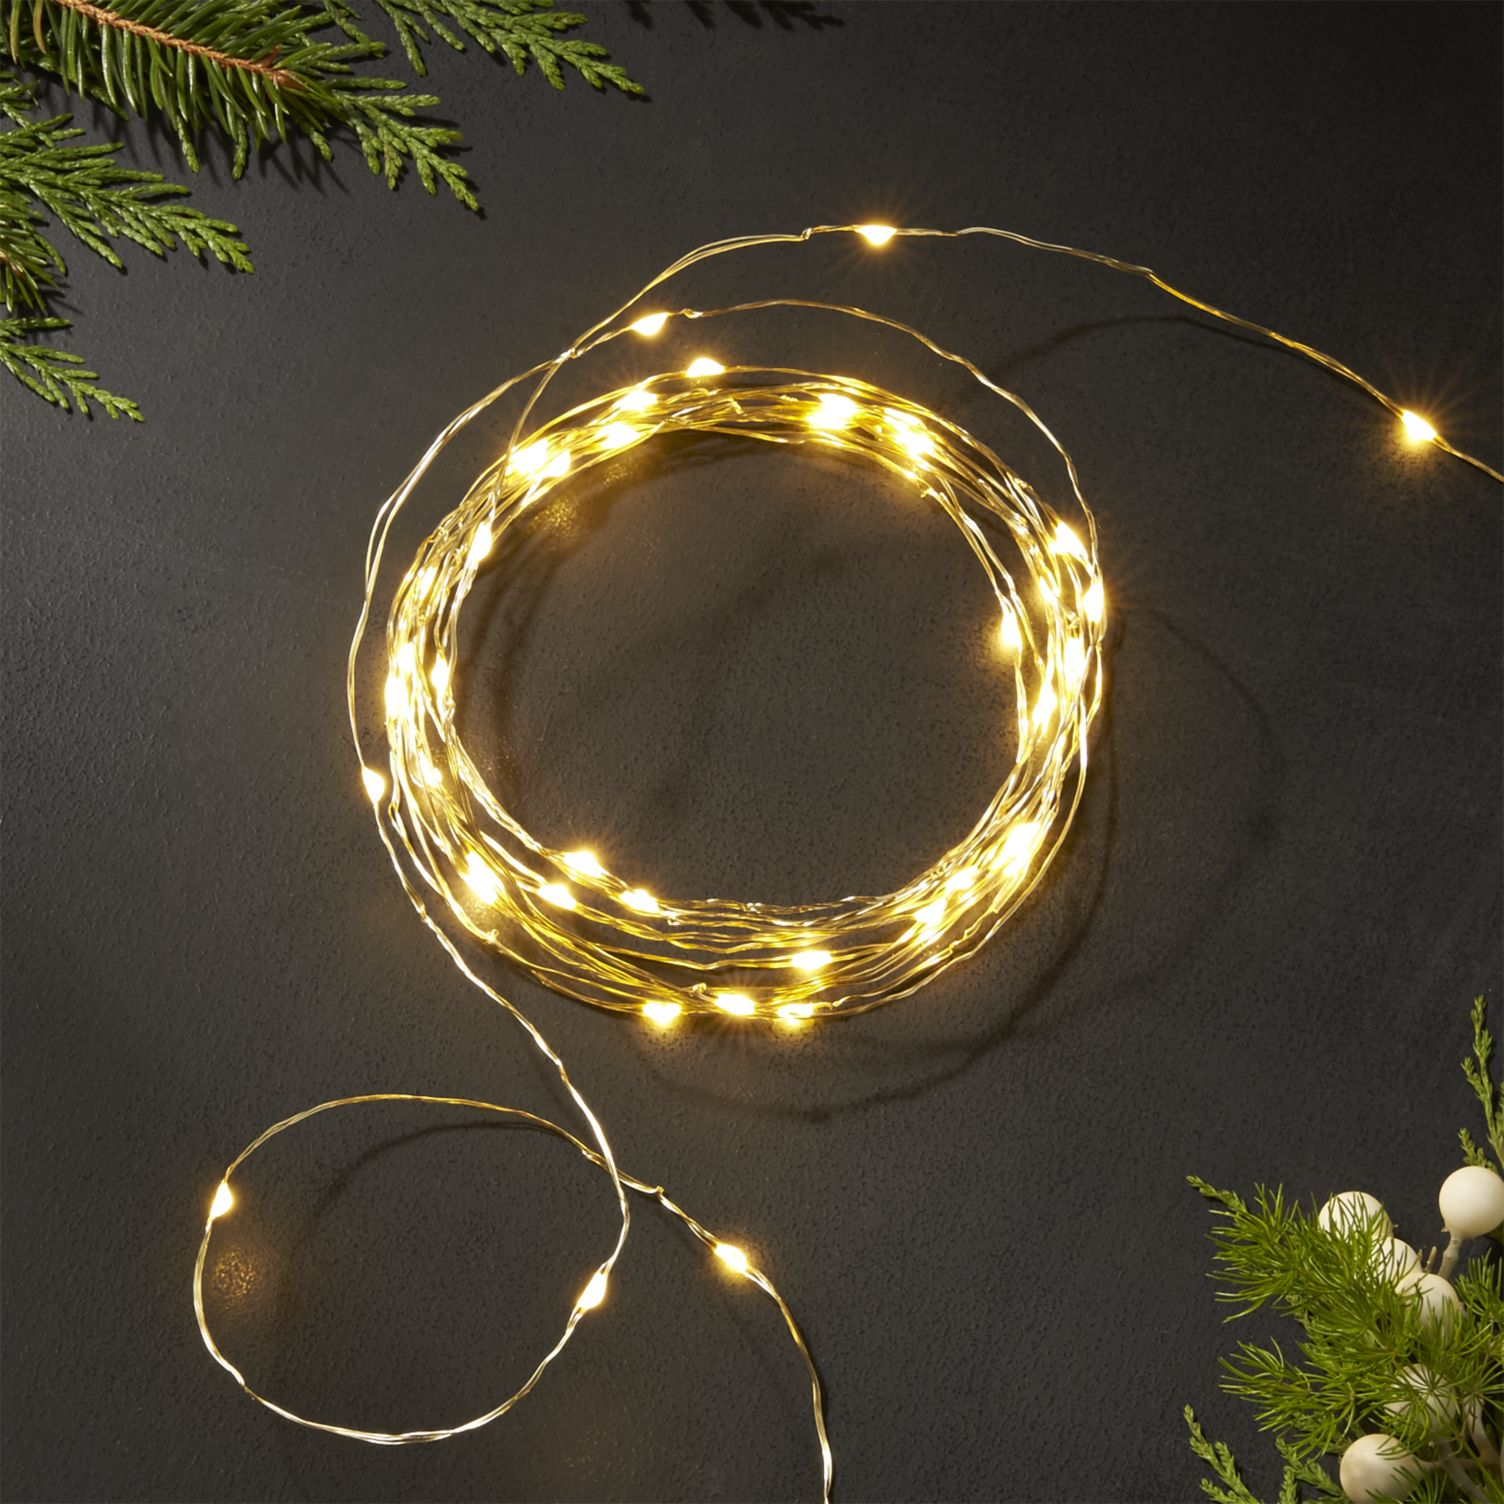 30-LED Fairy Copper String Lights 3m Waterproof, 3AA Battery, Warm White